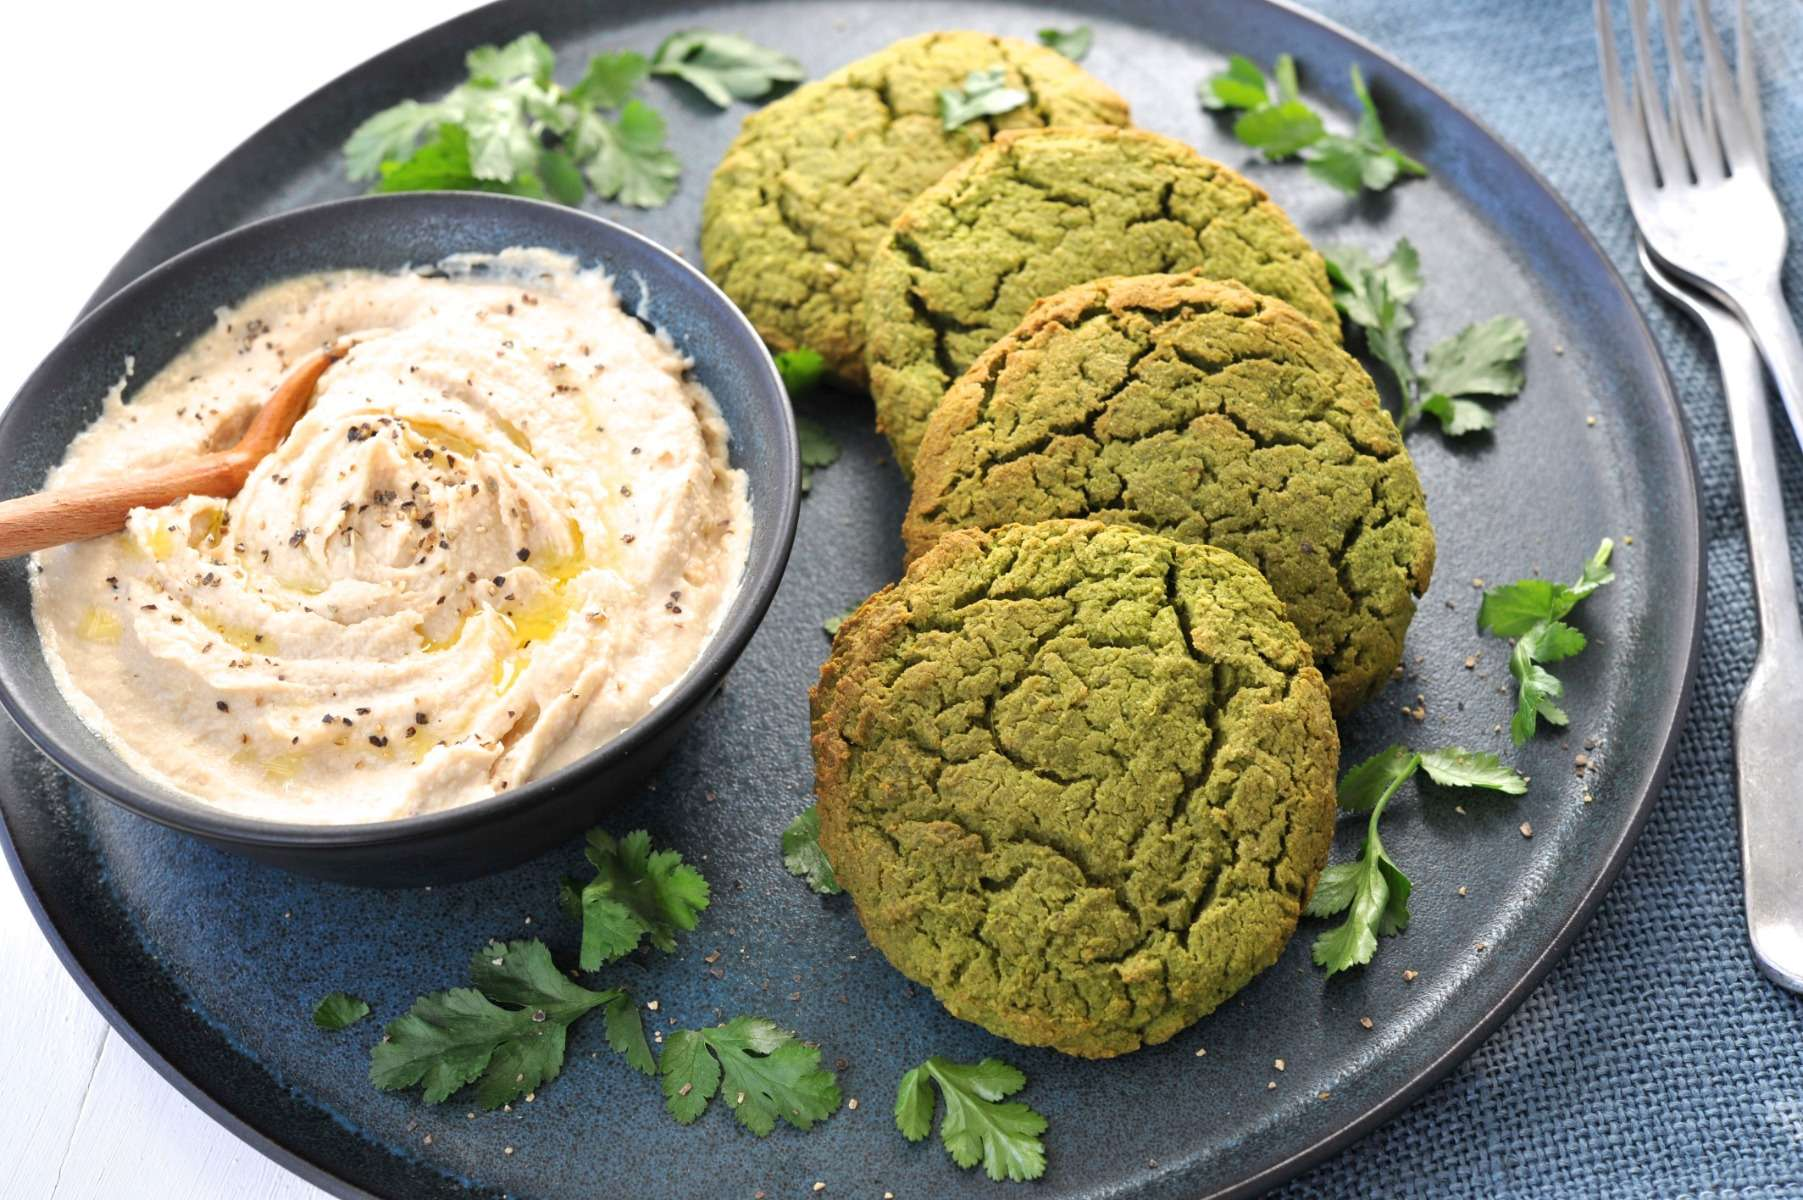 BAKED CHICKPEA FALAFELS with Roasted Cauliflower Buckwheat Salad and Tangy Tahini Dip